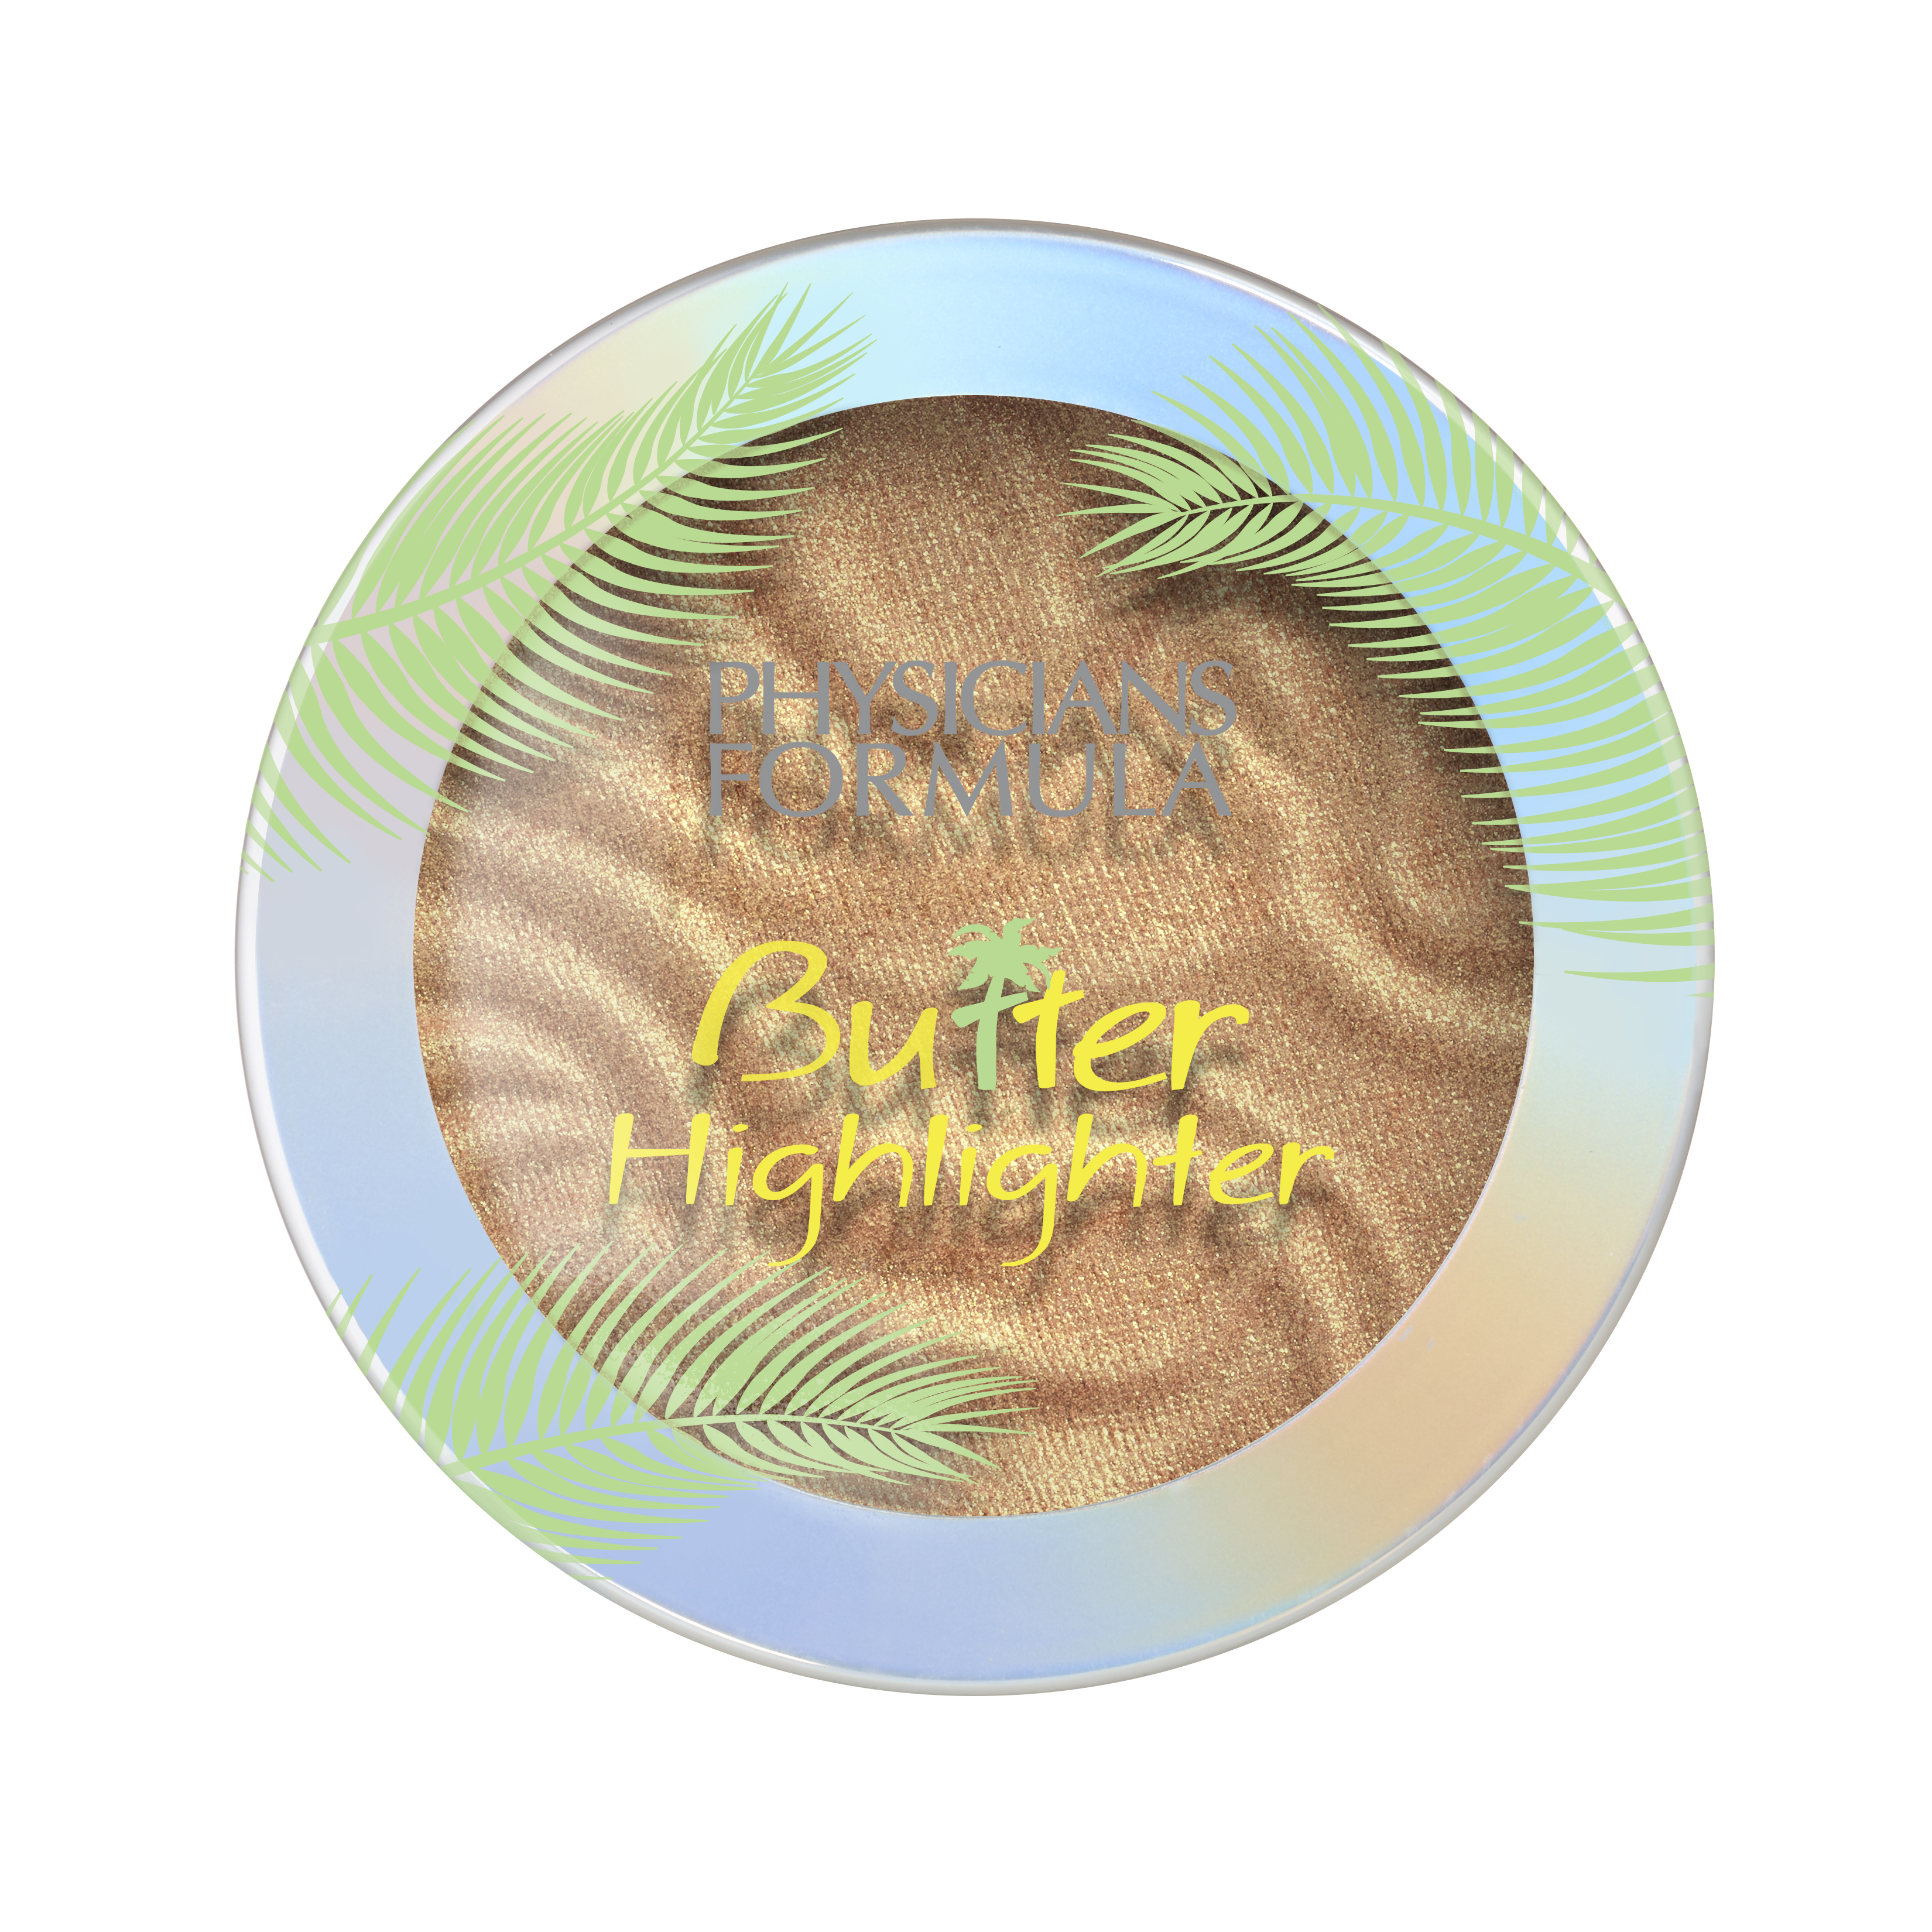 Physicians Formula Butter Highlighter